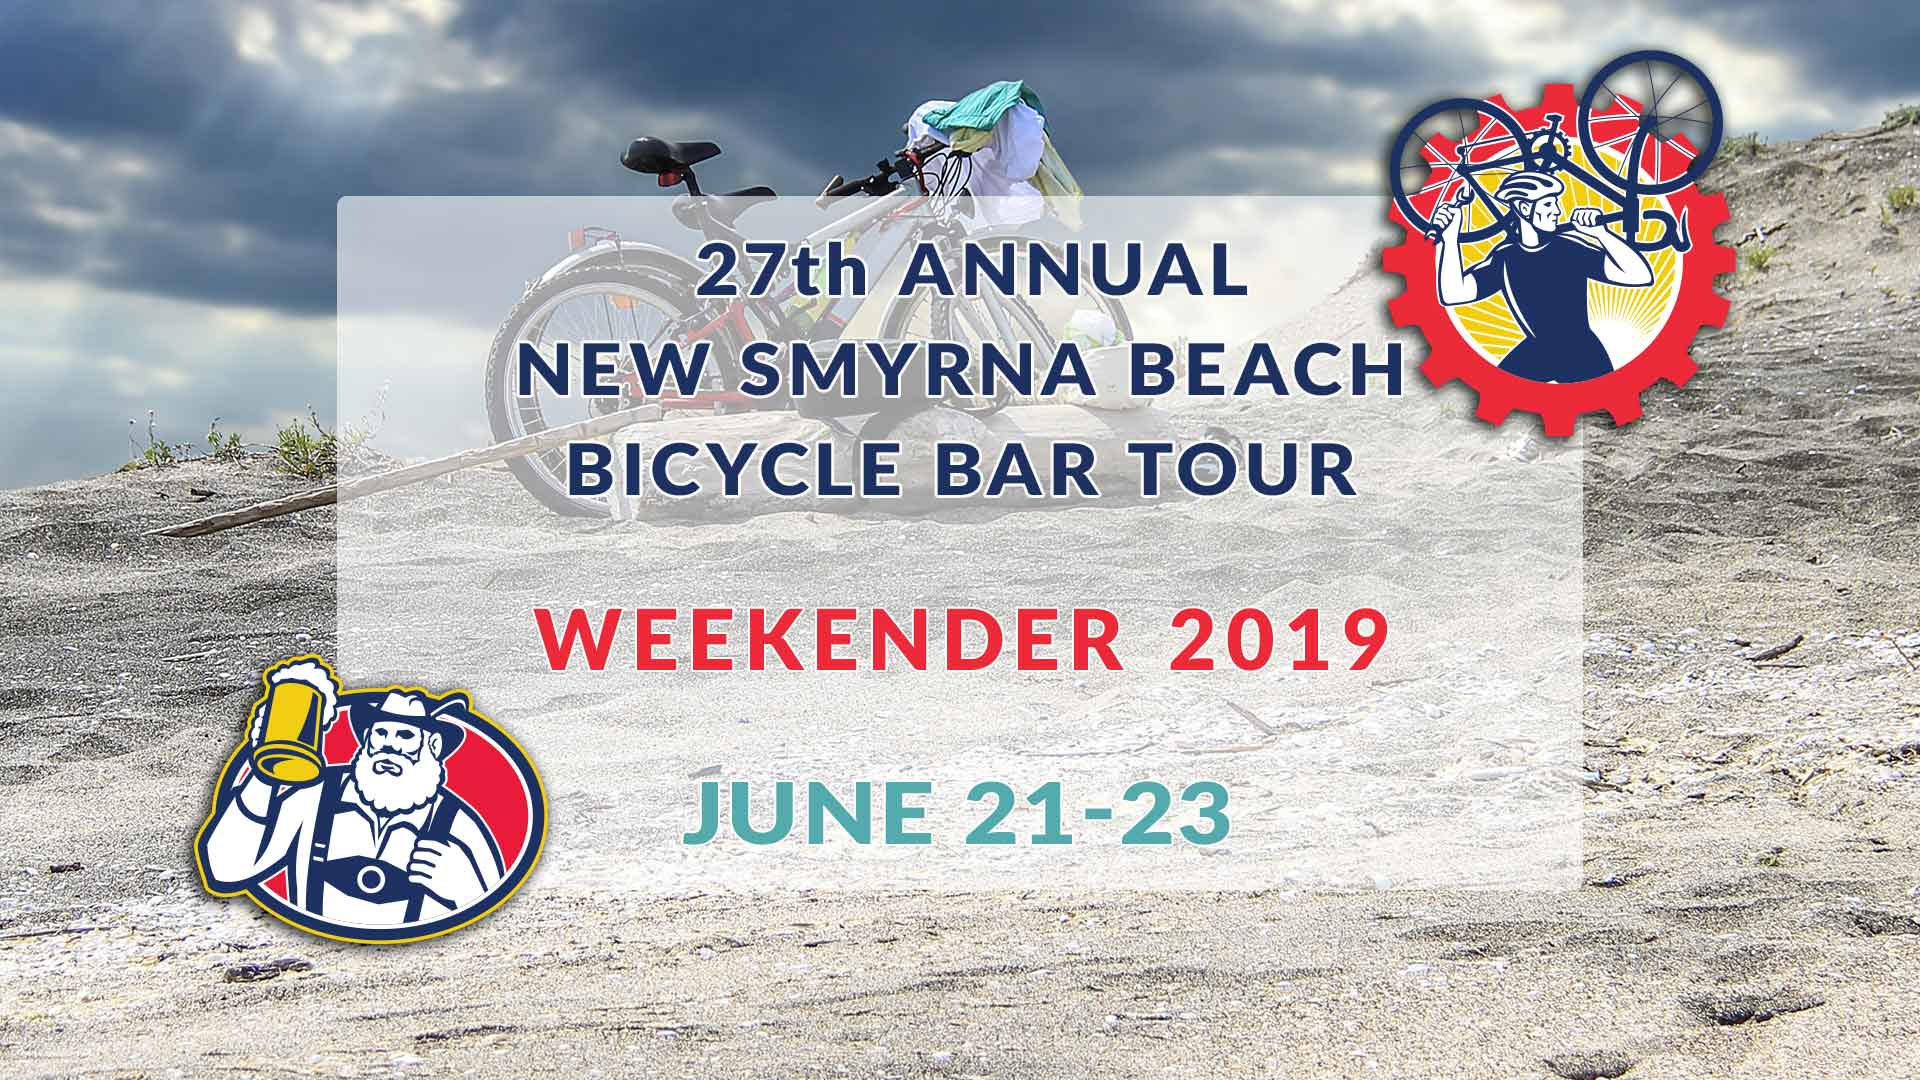 27th Annual Smyrna Beach Bicycle Bar Tour Weekender 2019